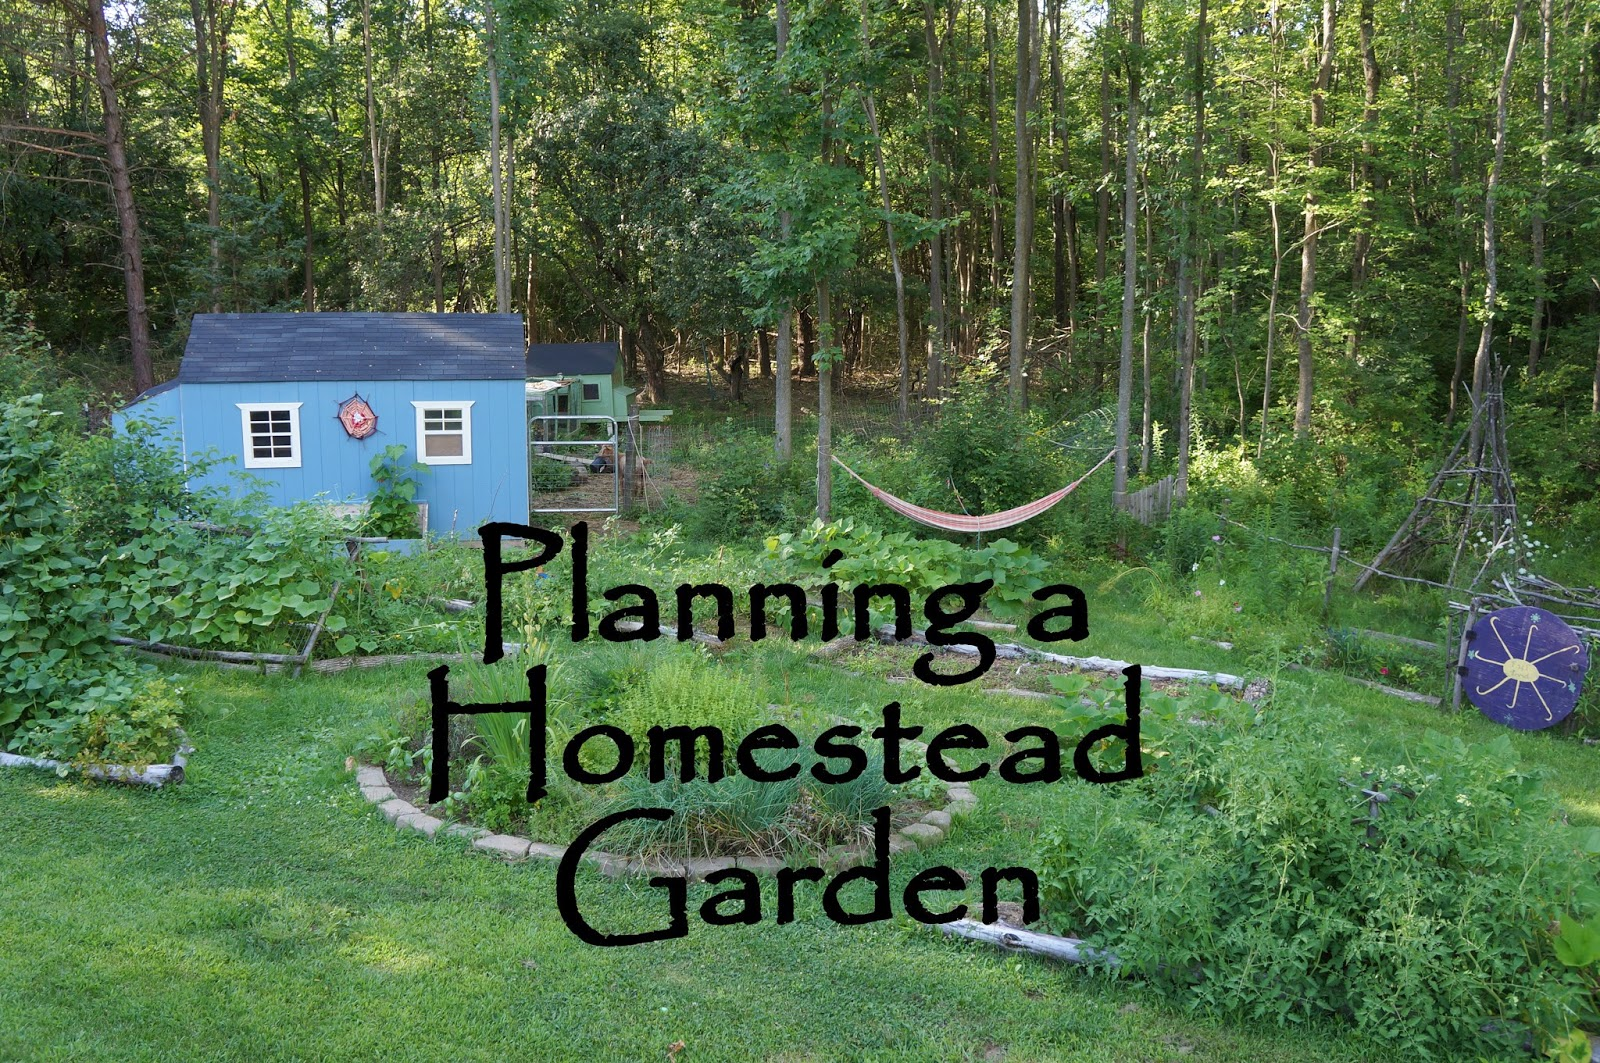 Backyard food garden ideas - Planning Your Homestead Garden